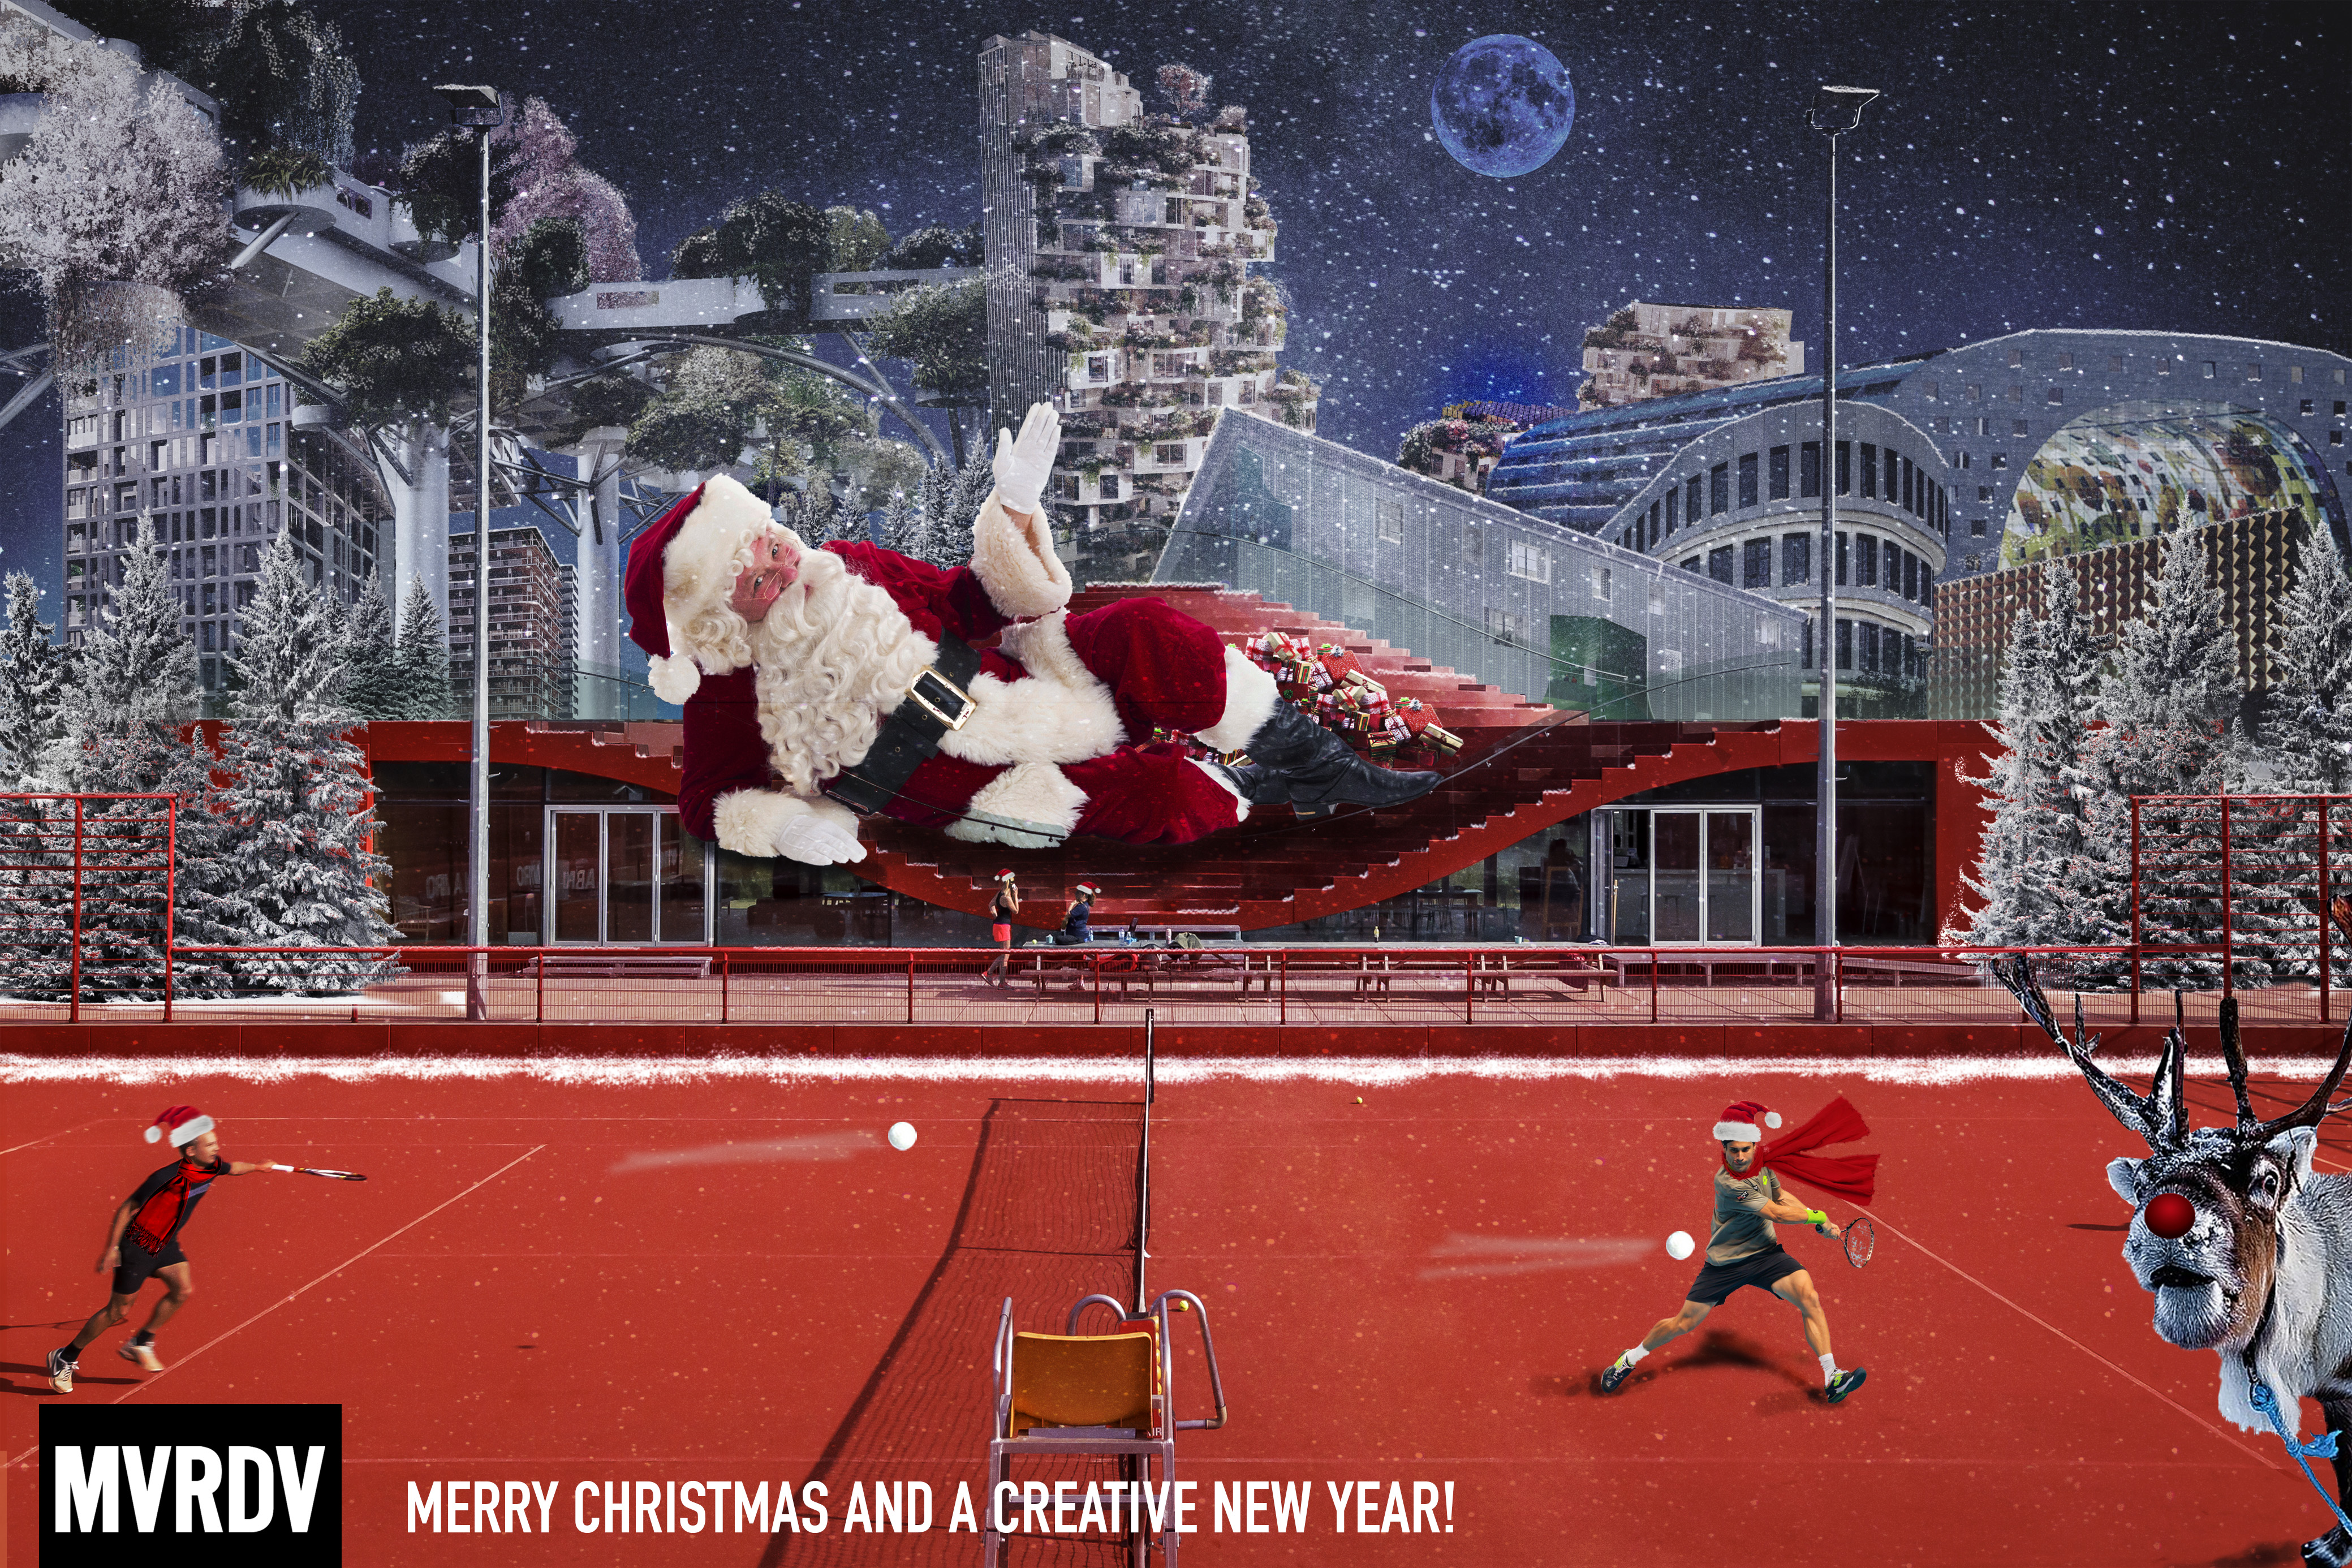 Merry Christmas and a happy new year from the MVRDV team!